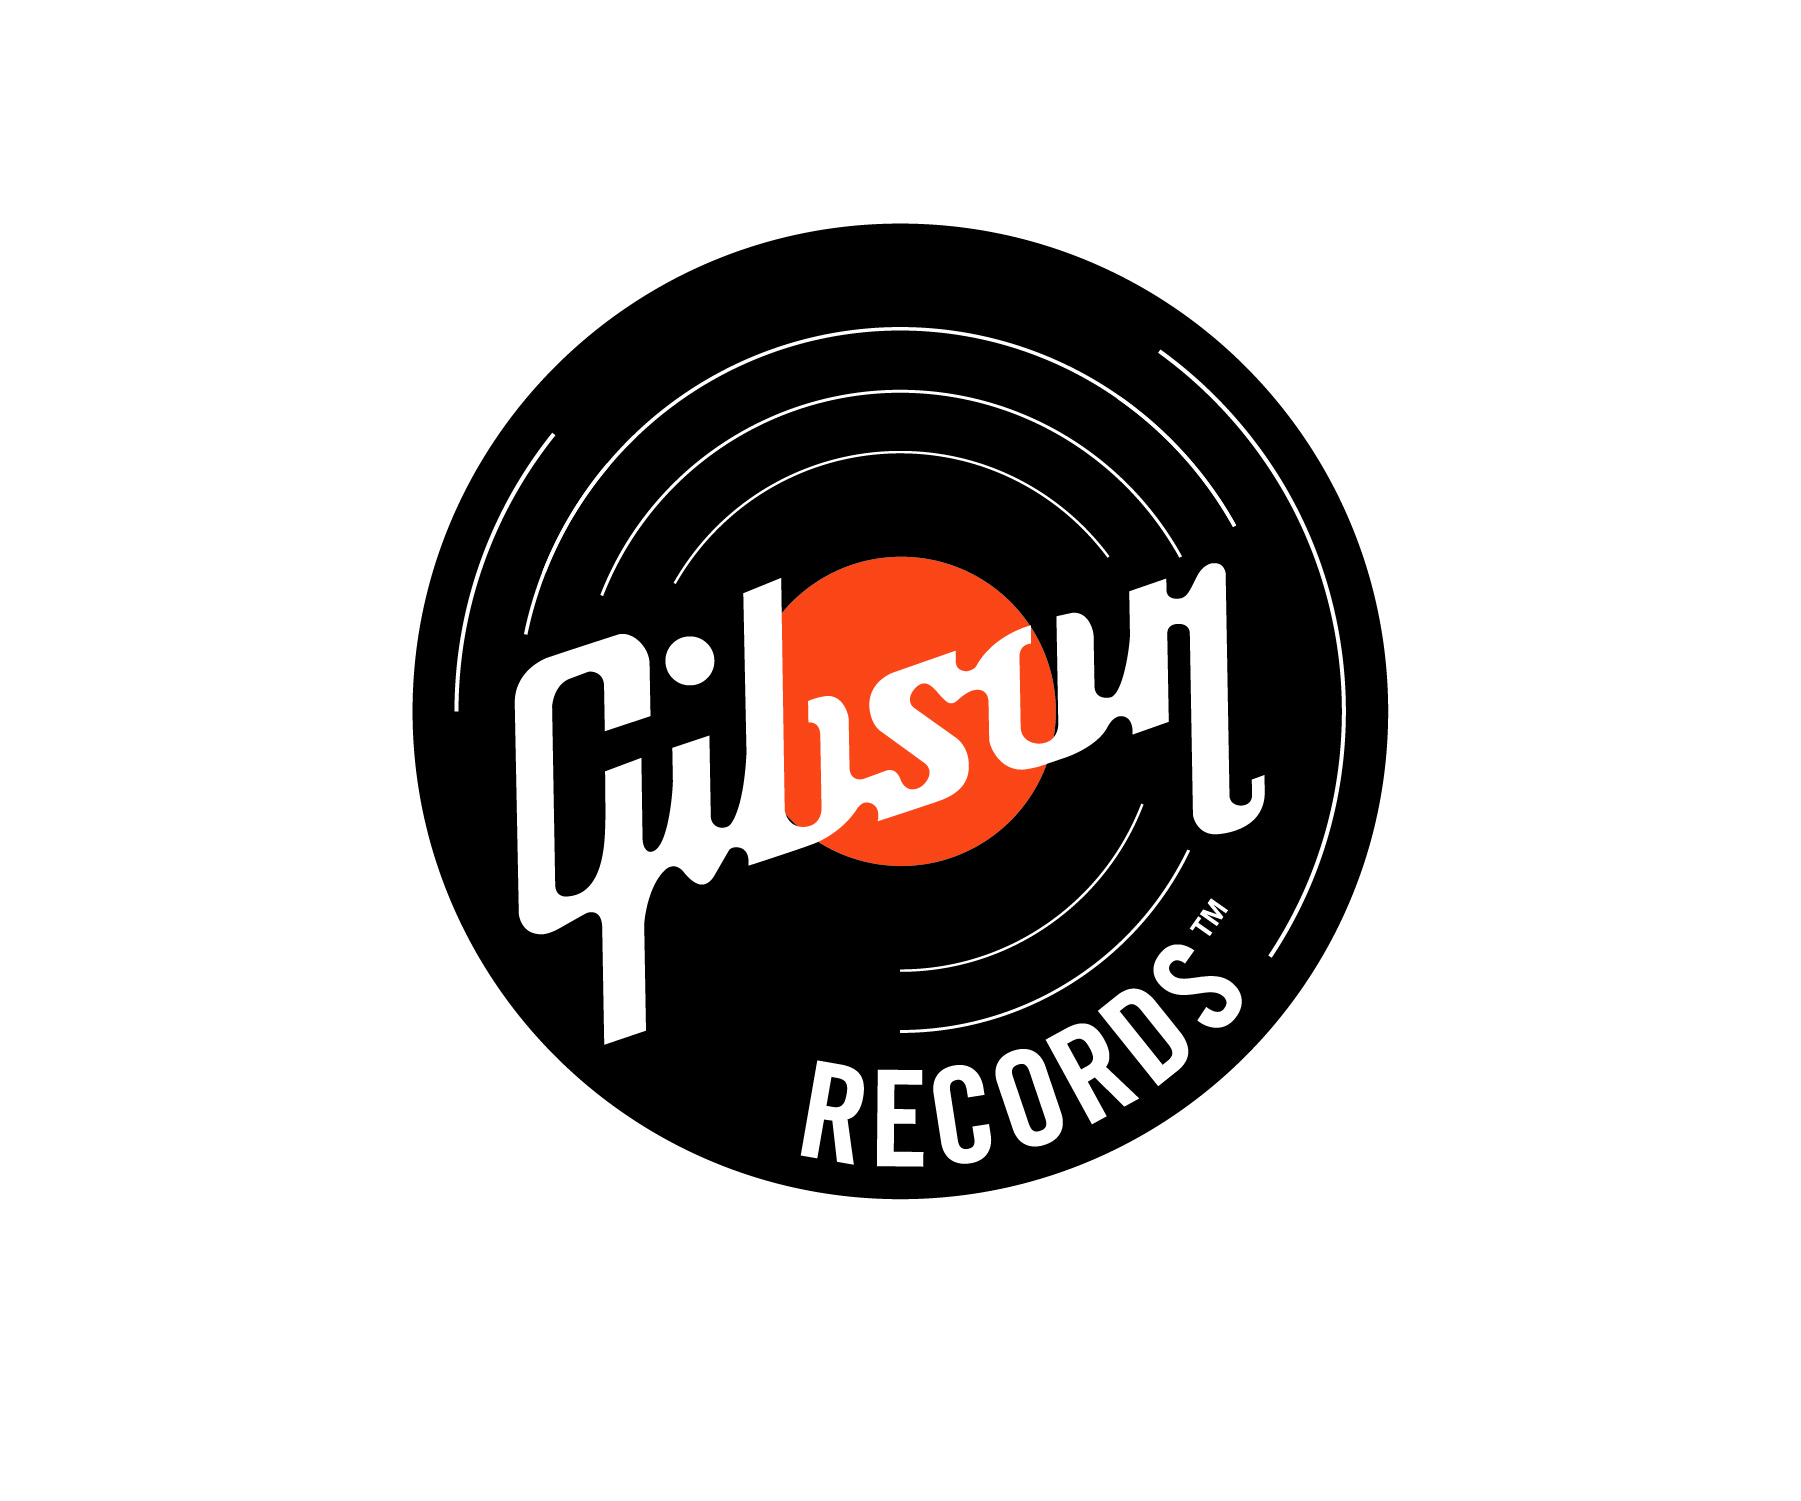 Gibson Announces Launch Of Record Label, First Album With Slash Featuring Myles Kennedy & The Conspirators